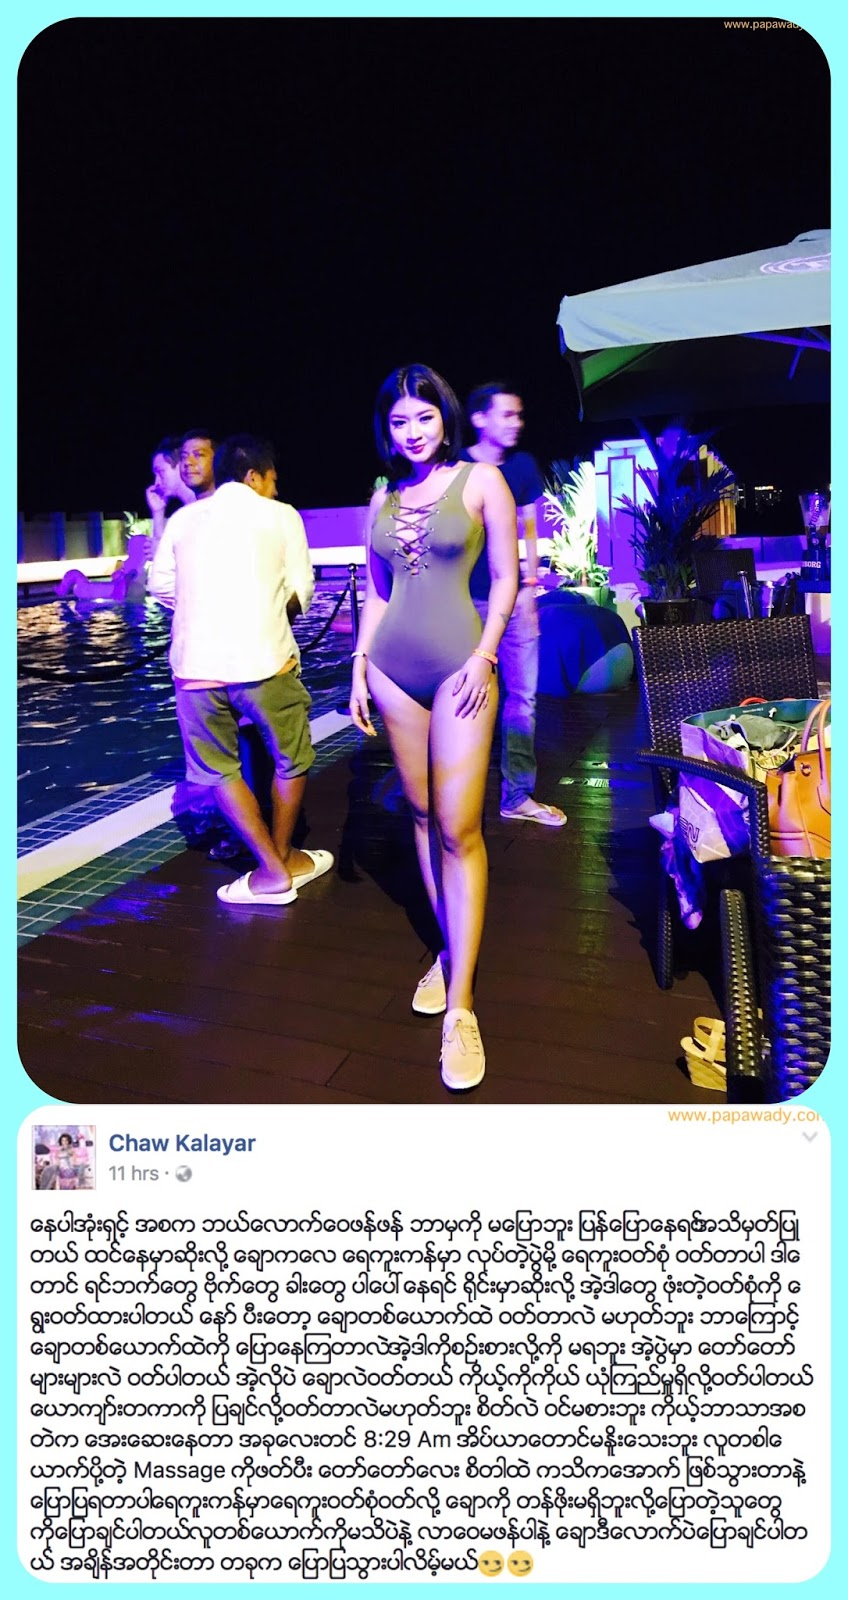 Chaw Kalayar Pool Party Snaps and She replies to critics on Facebook